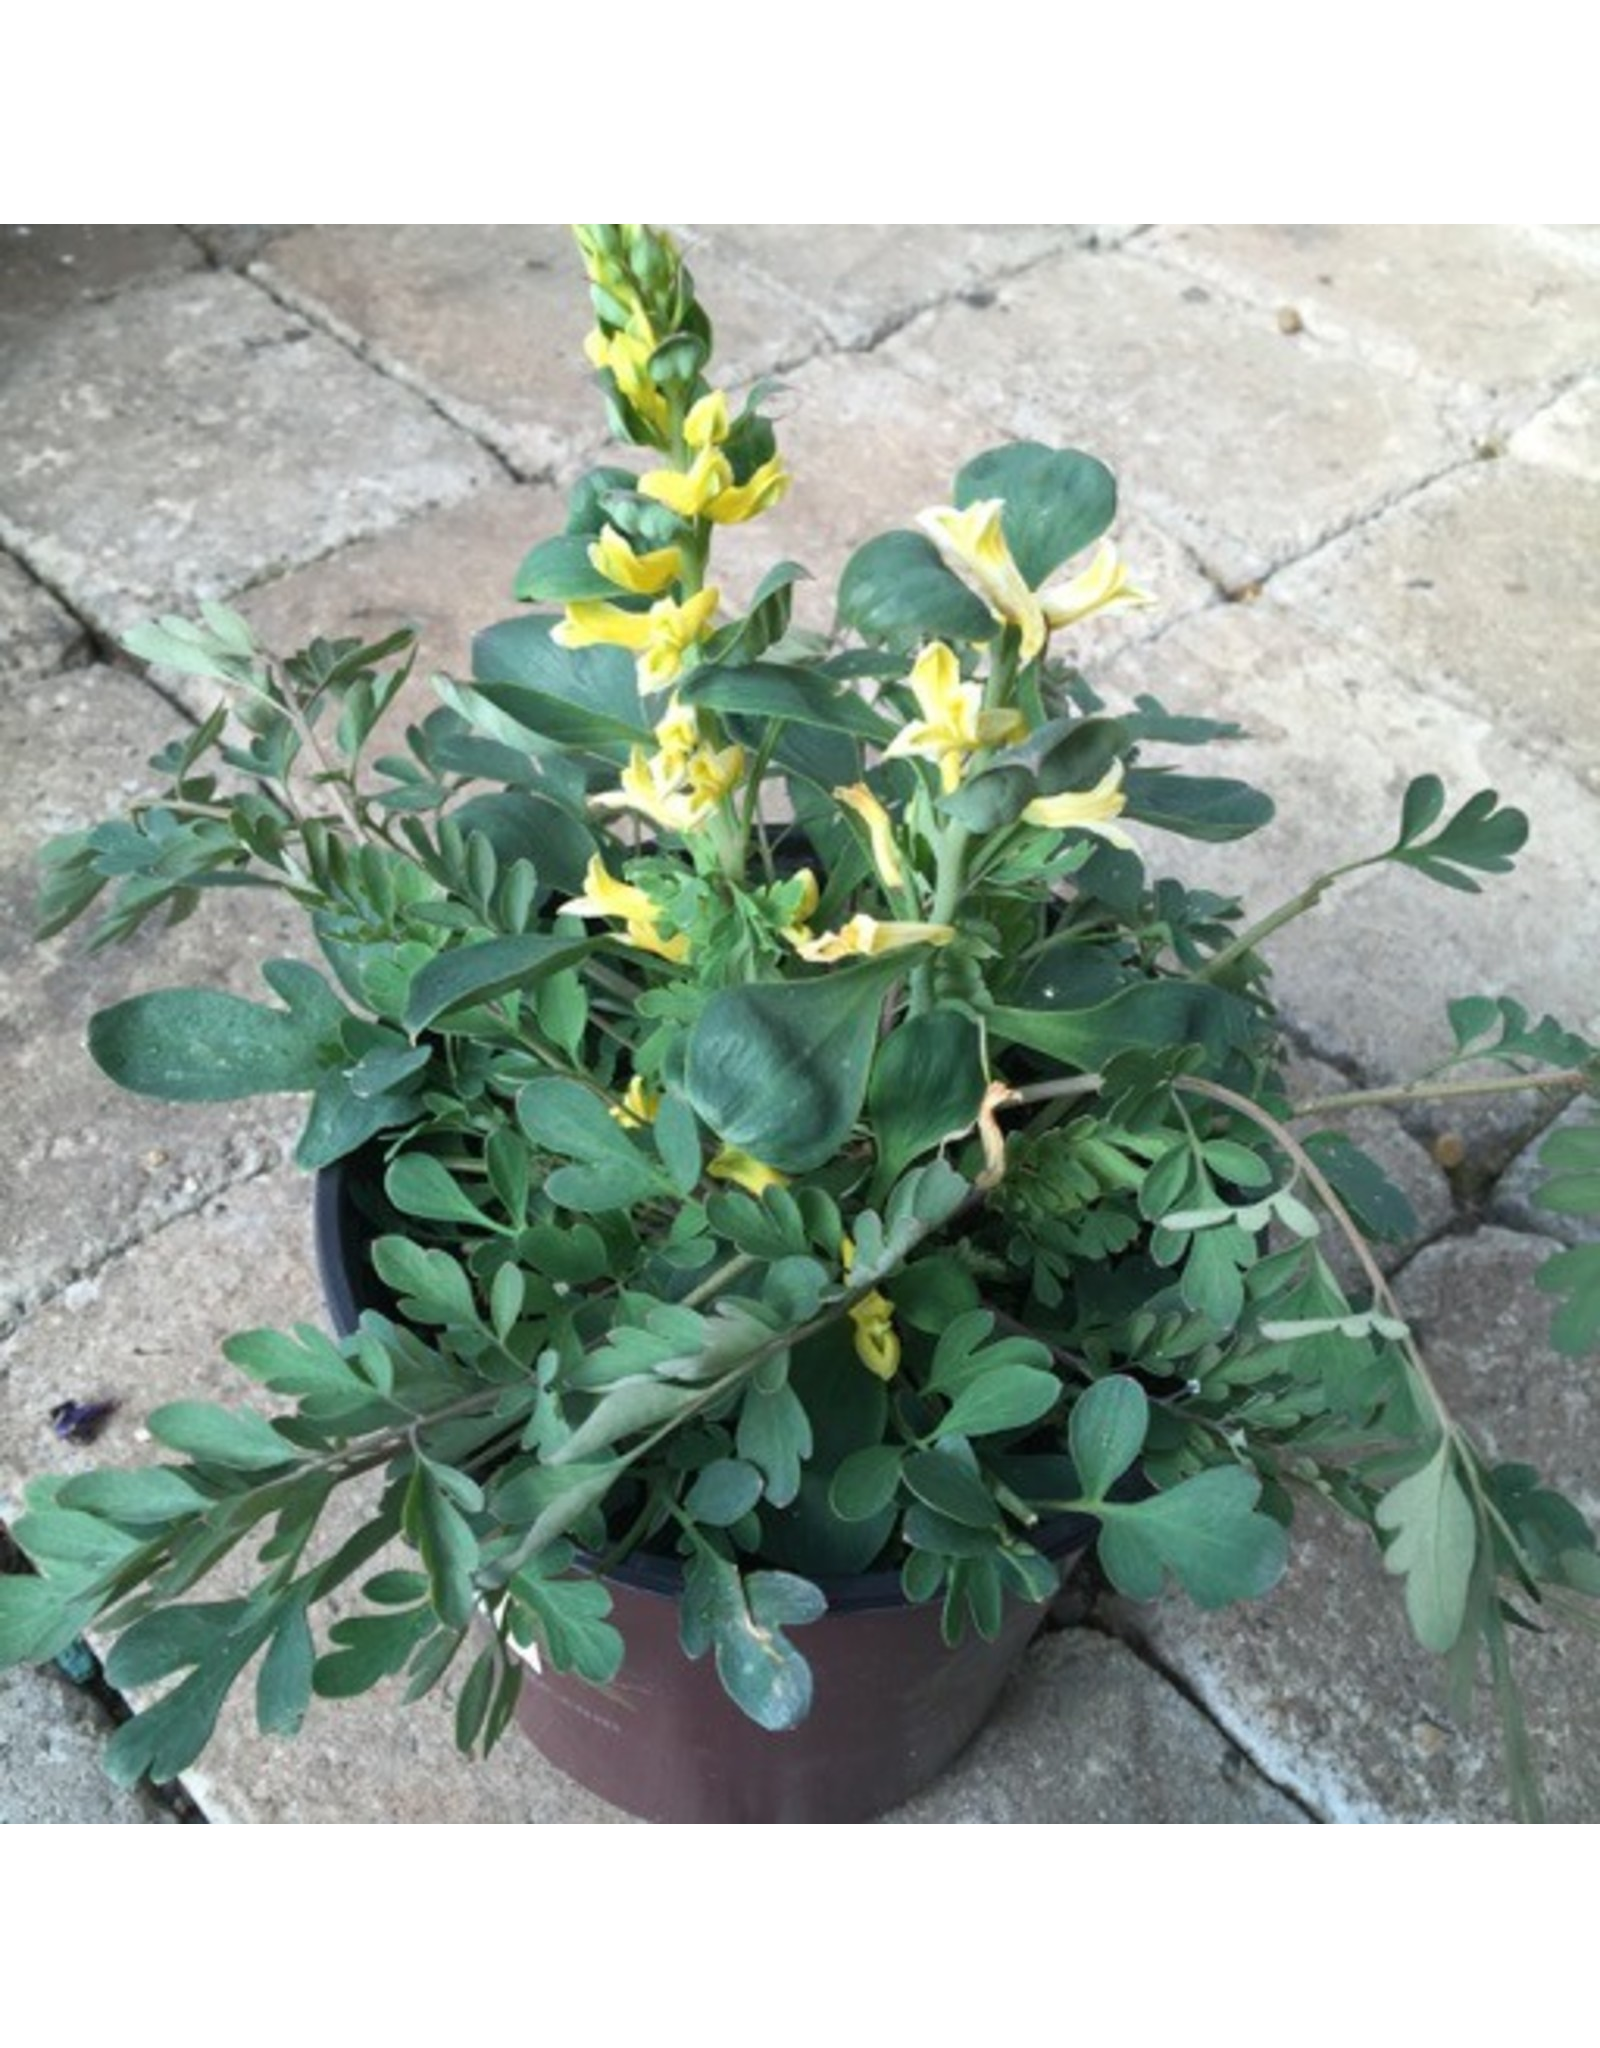 Corydalis 'Canary Feathers' 1 Gallon